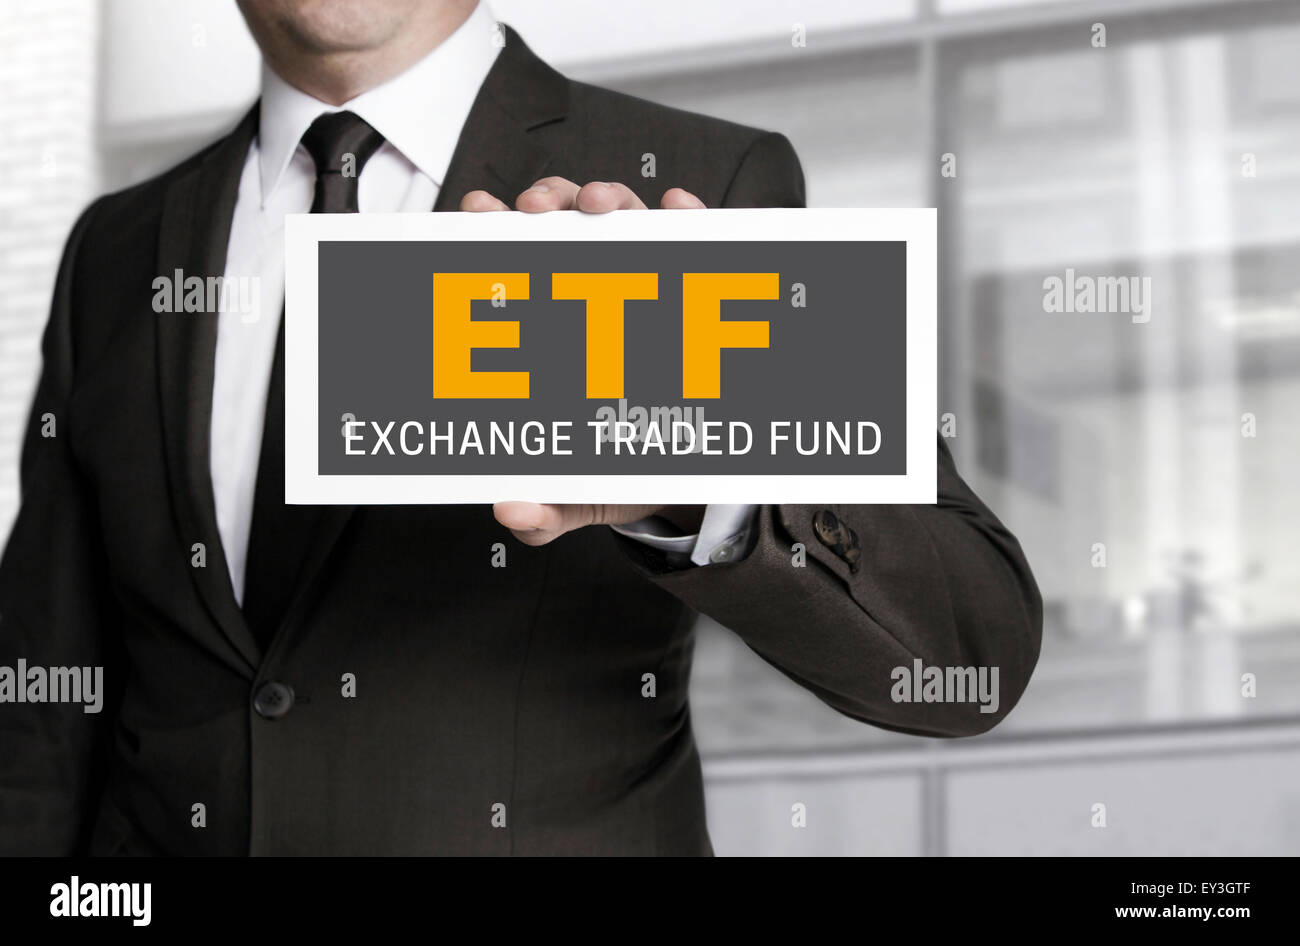 ETF sign is held by businessman background. Stock Photo